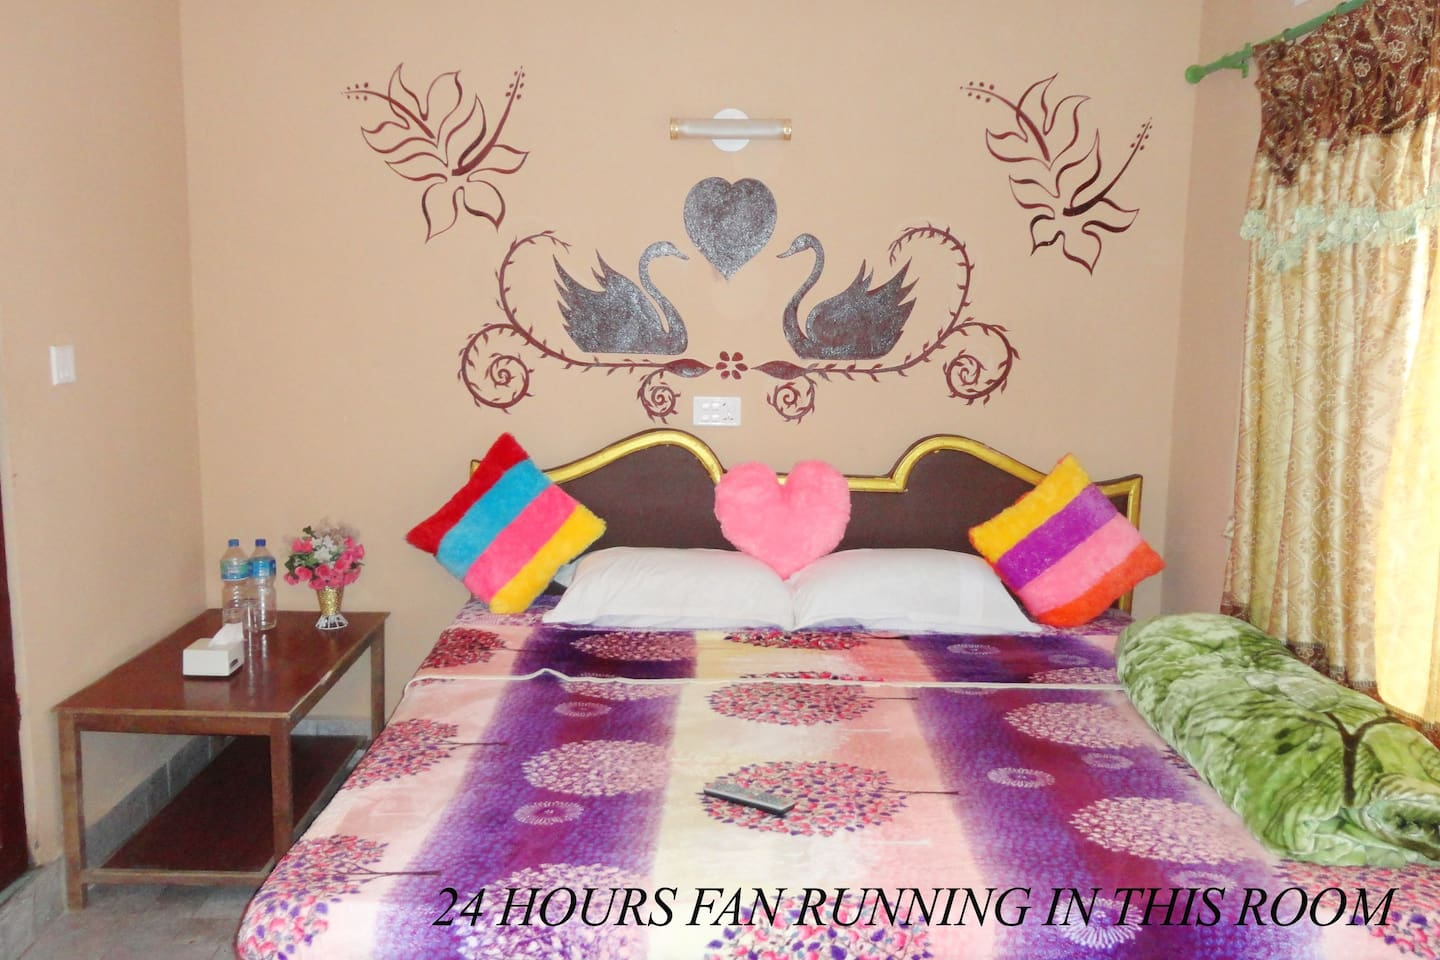 King suite room with air conditioner and balcony